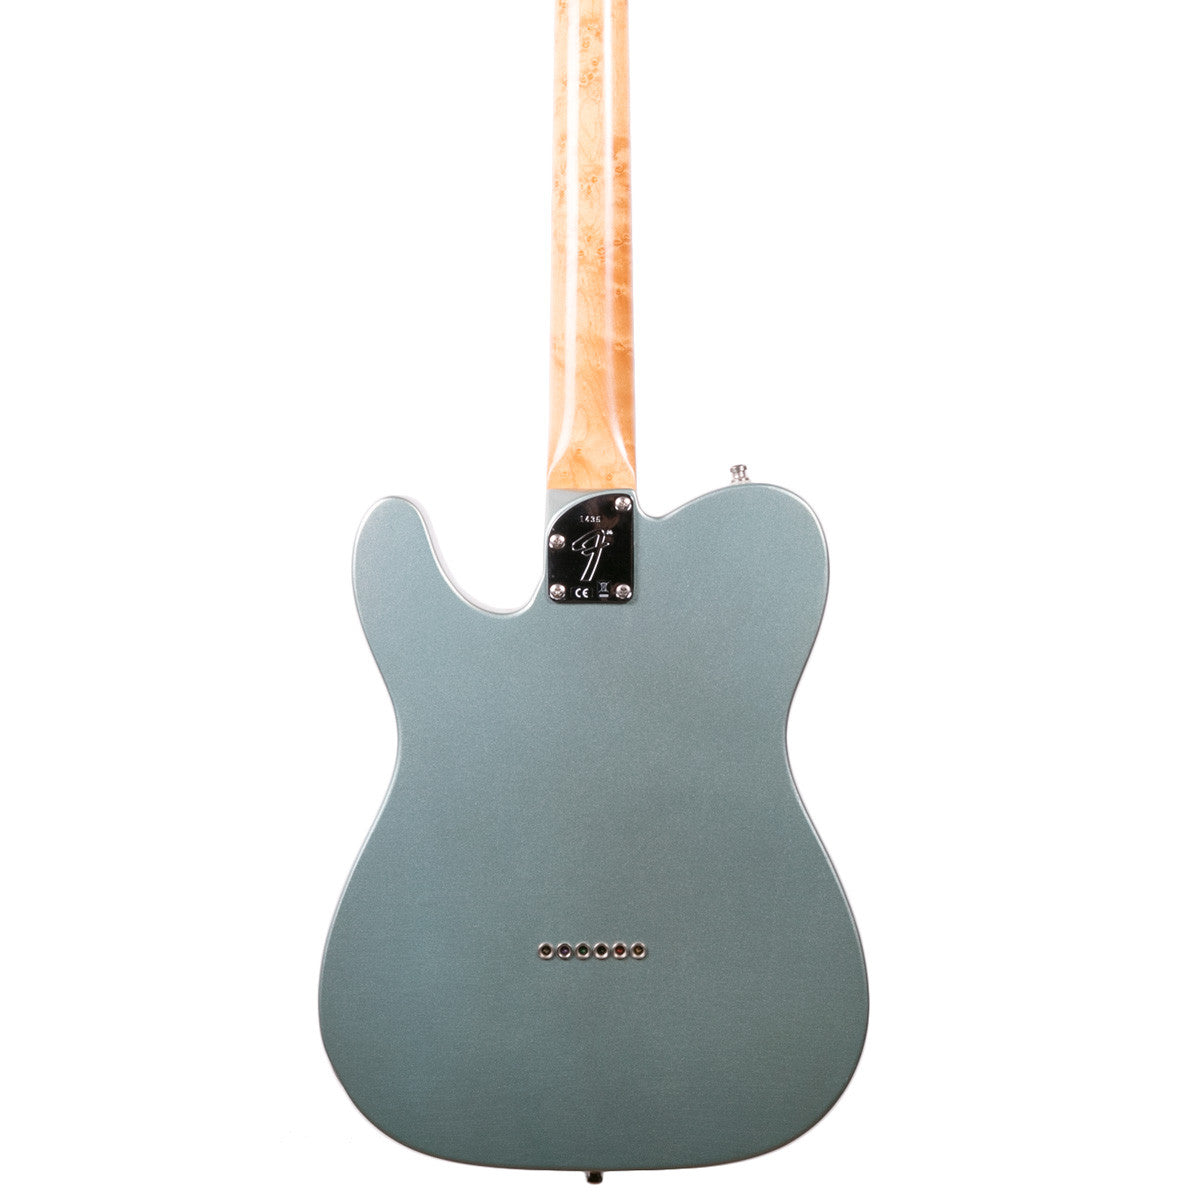 Fender Custom Shop Postmodern Telecaster - Lush Closet Classic Faded Firemist Silver - SALE PRICE | Lucky Fret Music Co.